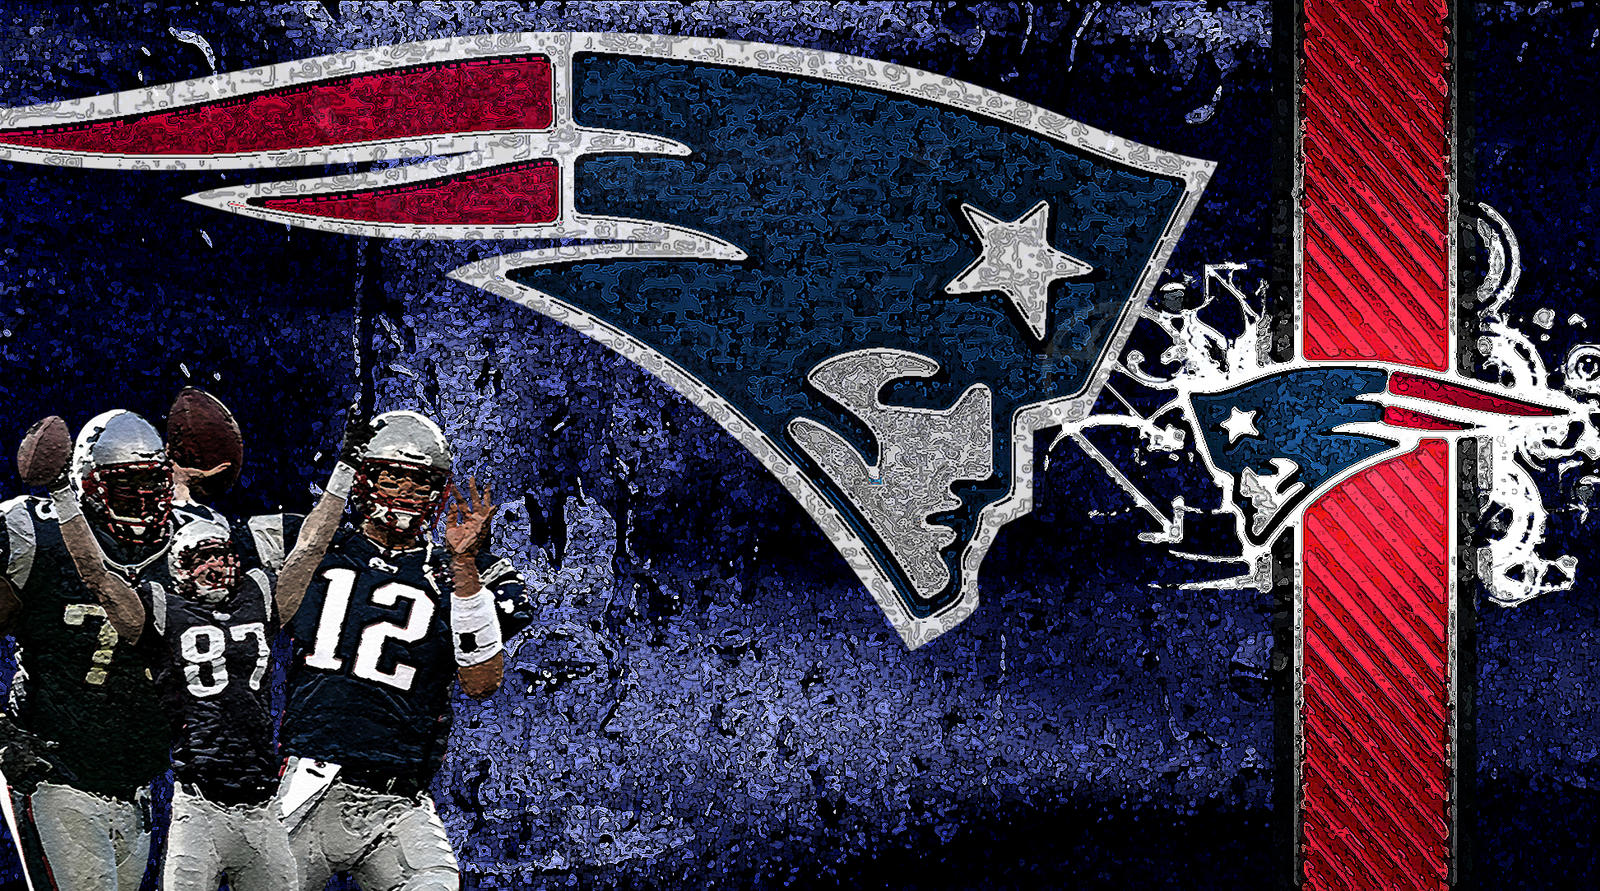 New England Patriots Wallpaper by cthebeast123 on DeviantArt